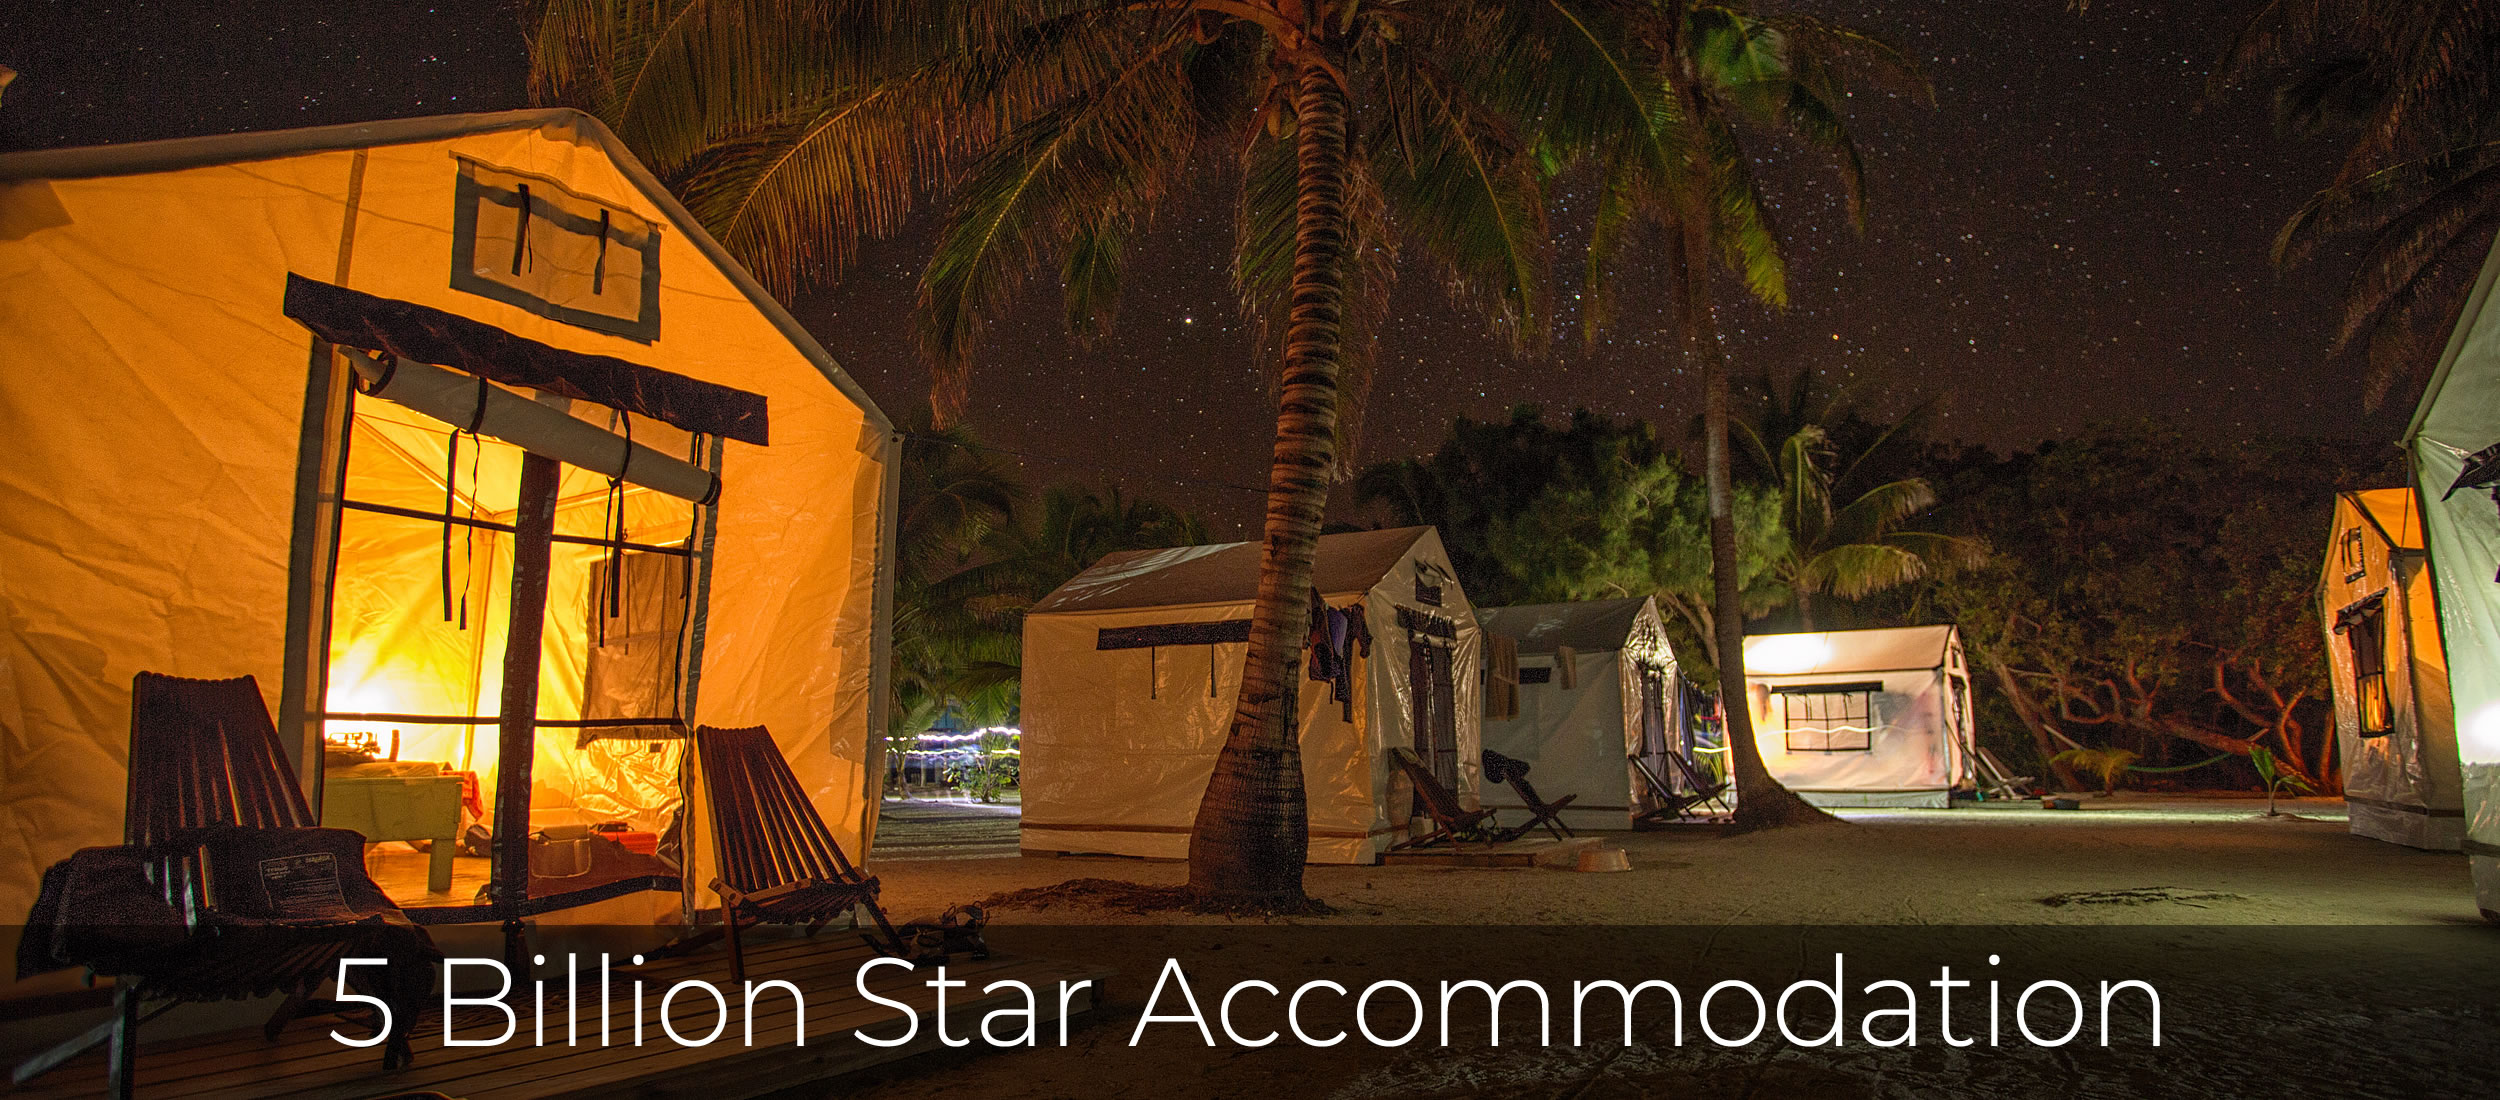 5 Billion Star Accommodation